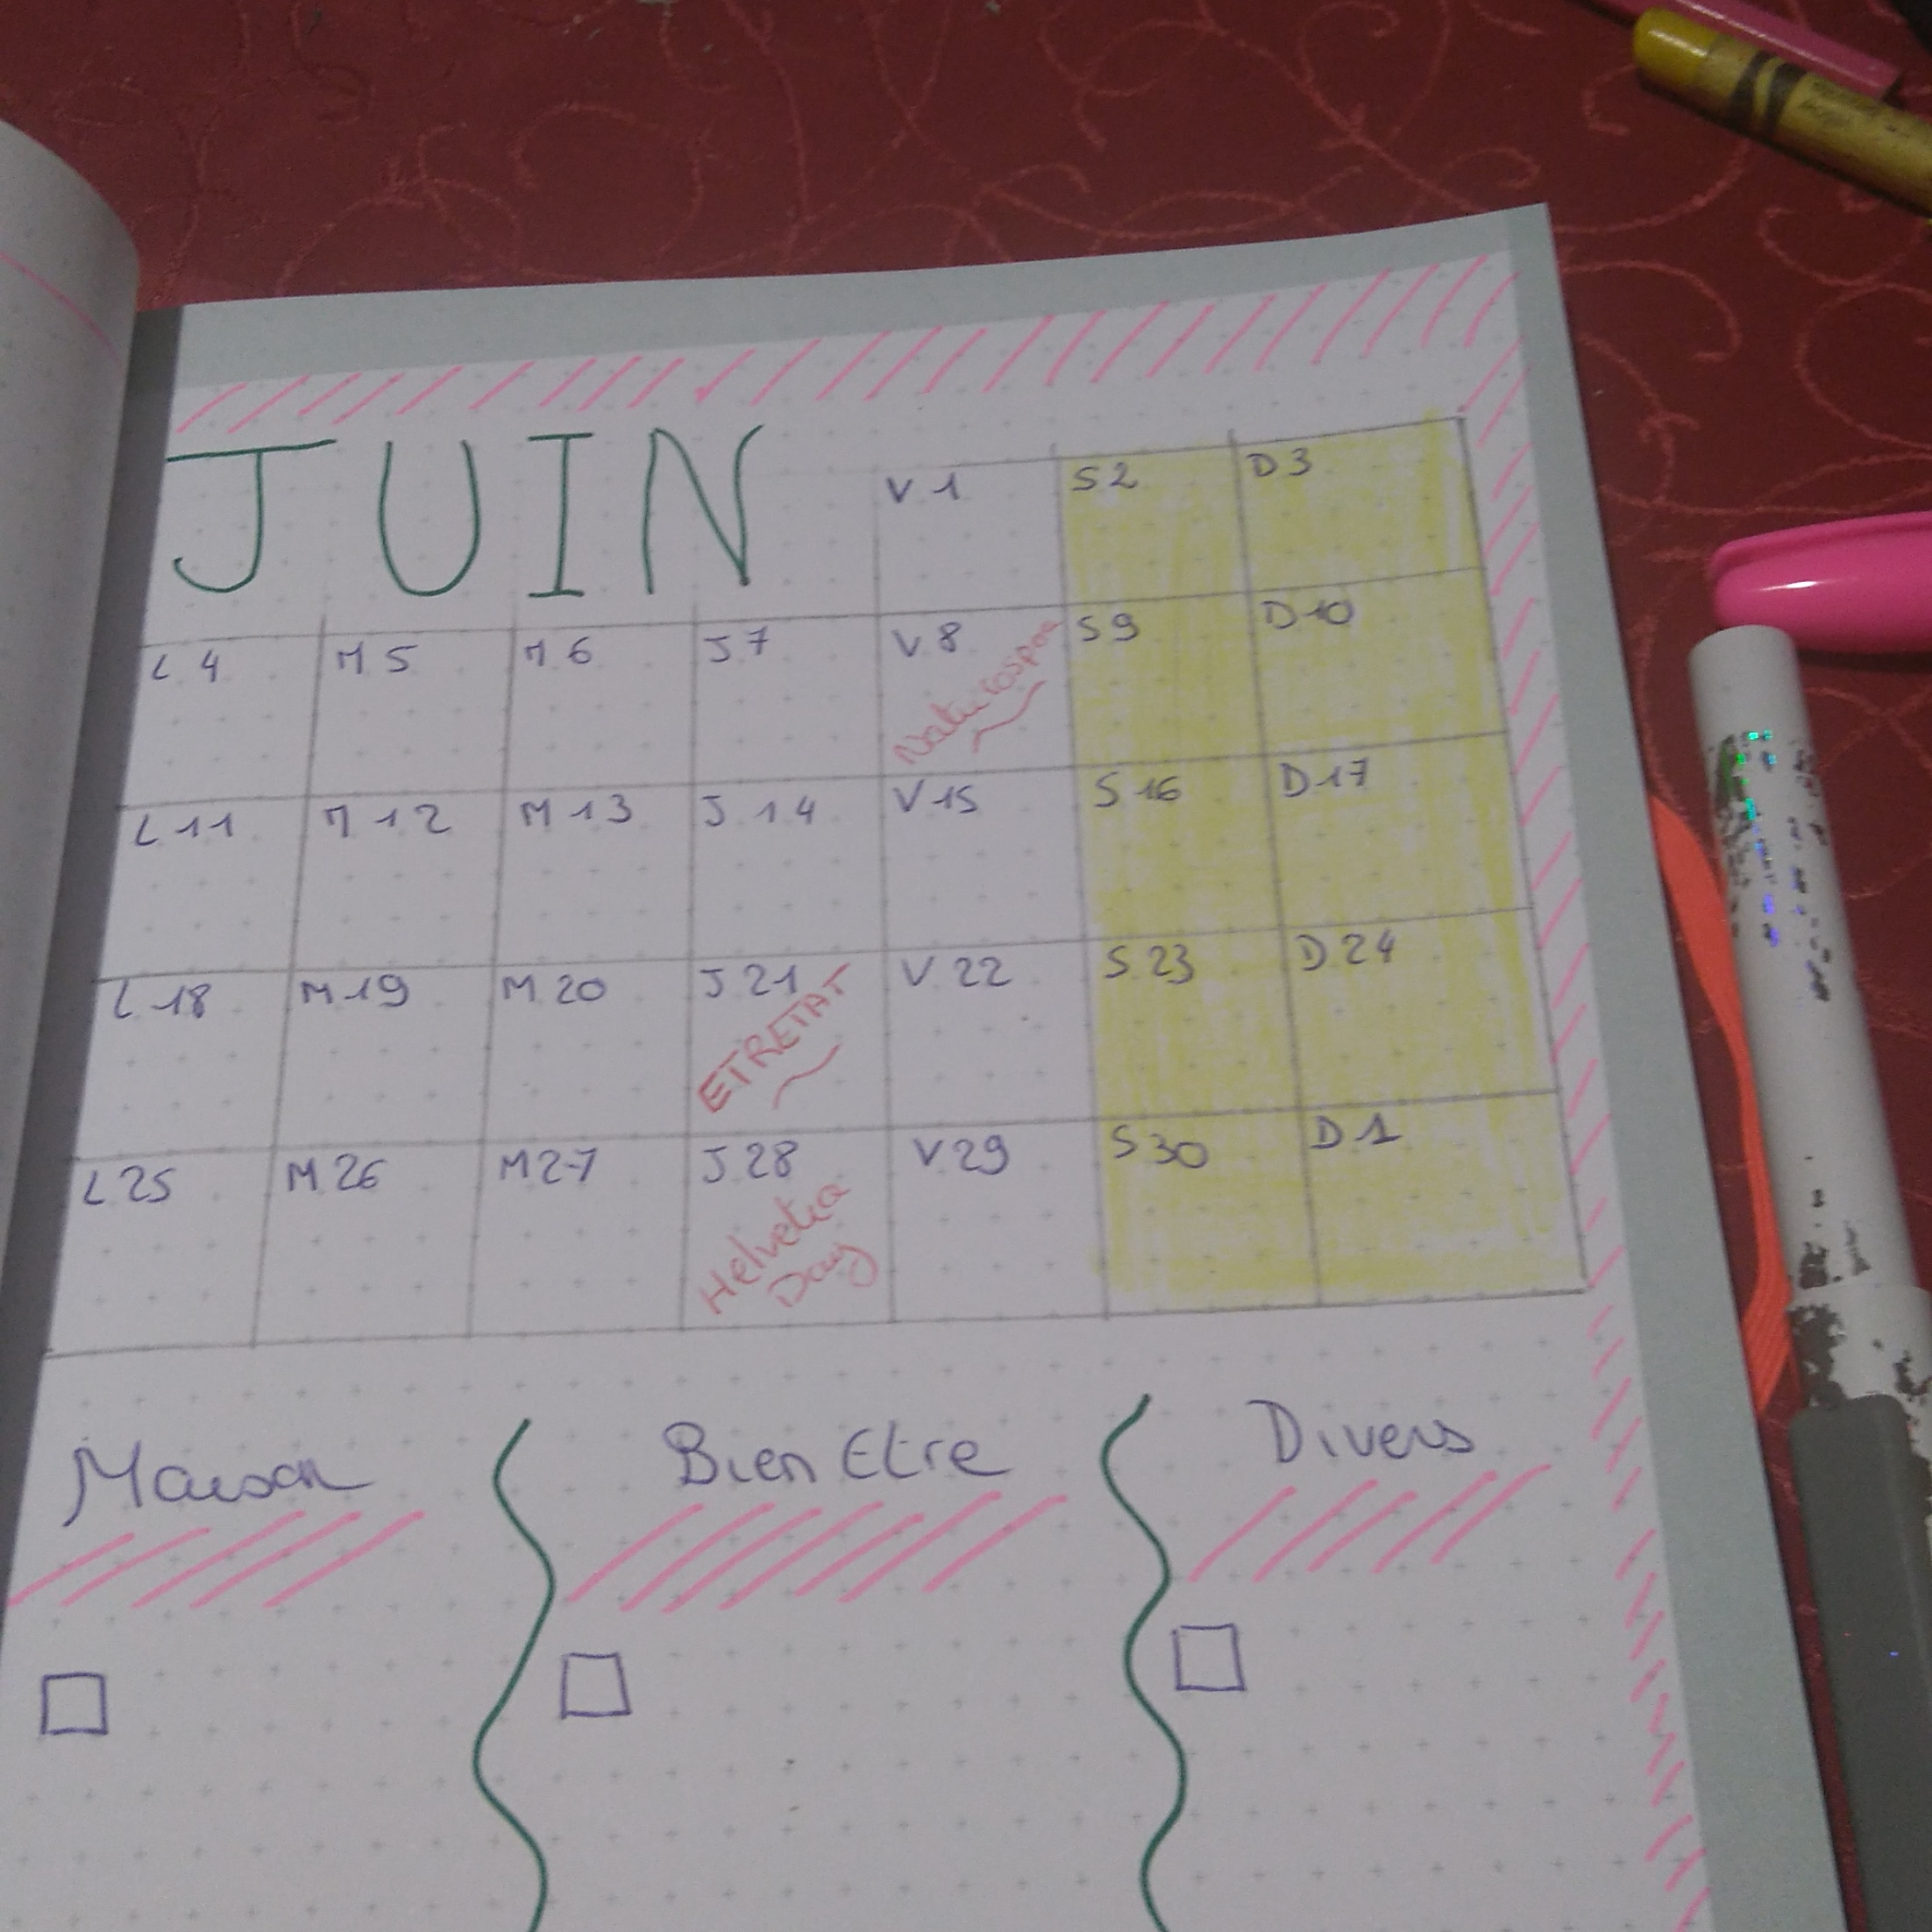 Le bullet journal - Page 2 Img_2020